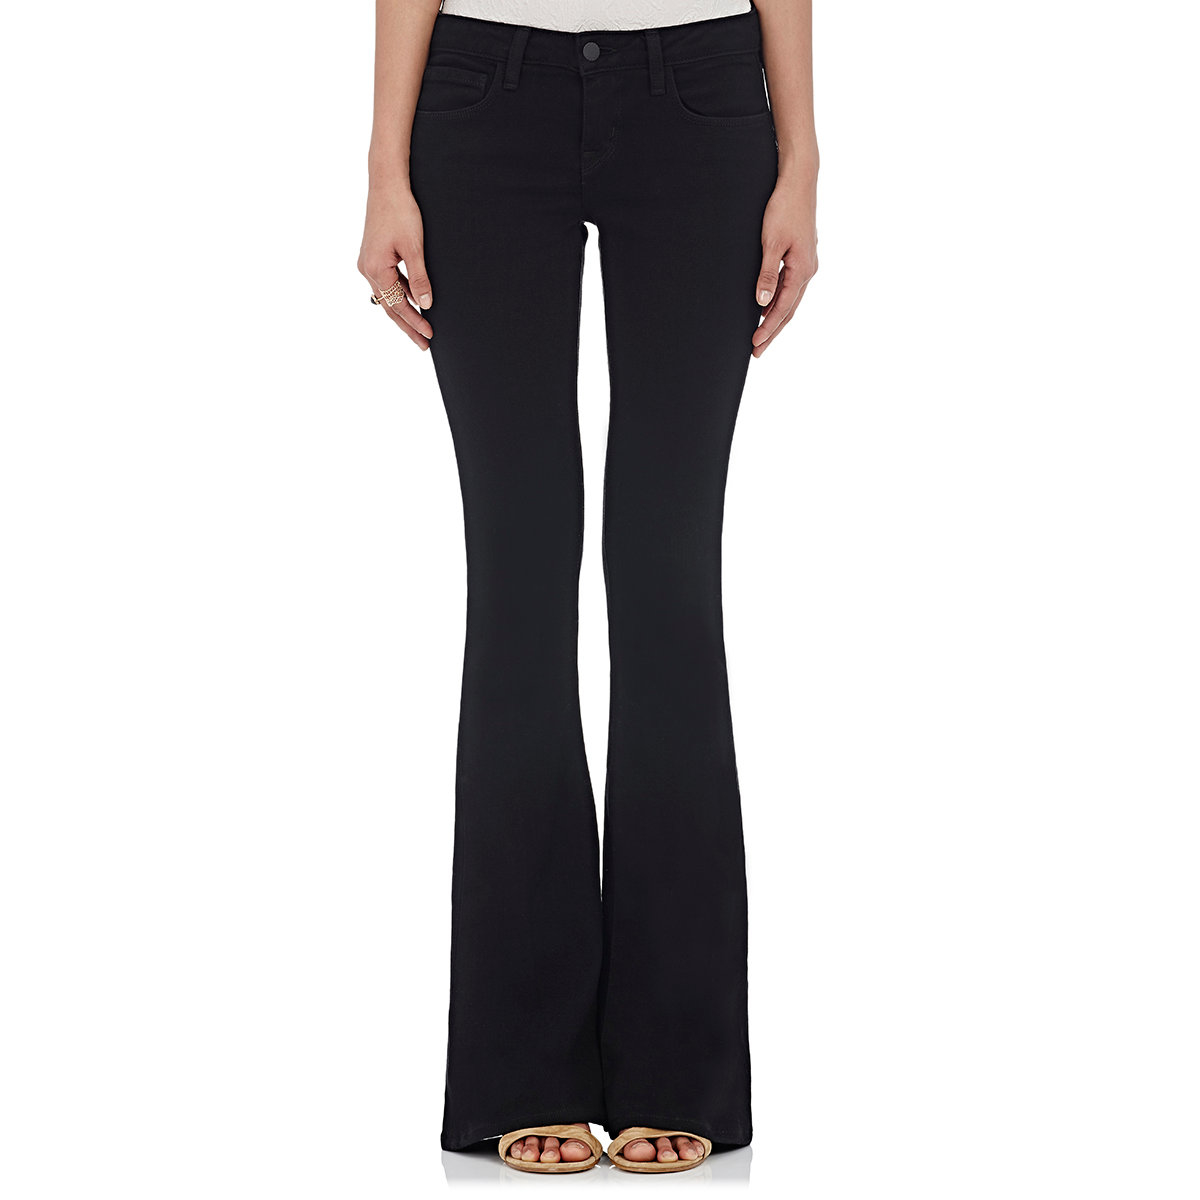 With the perfect amount of stretch, each pair is designed for a form-flattering fit that keeps you comfortable on even your busiest days. High rise jeans sit at your true waist to flatter your natural figure. Low rise jeans rest at the hip and offer a casual, torso-lengthening look. And mid-rise jeans are the perfect in-between.